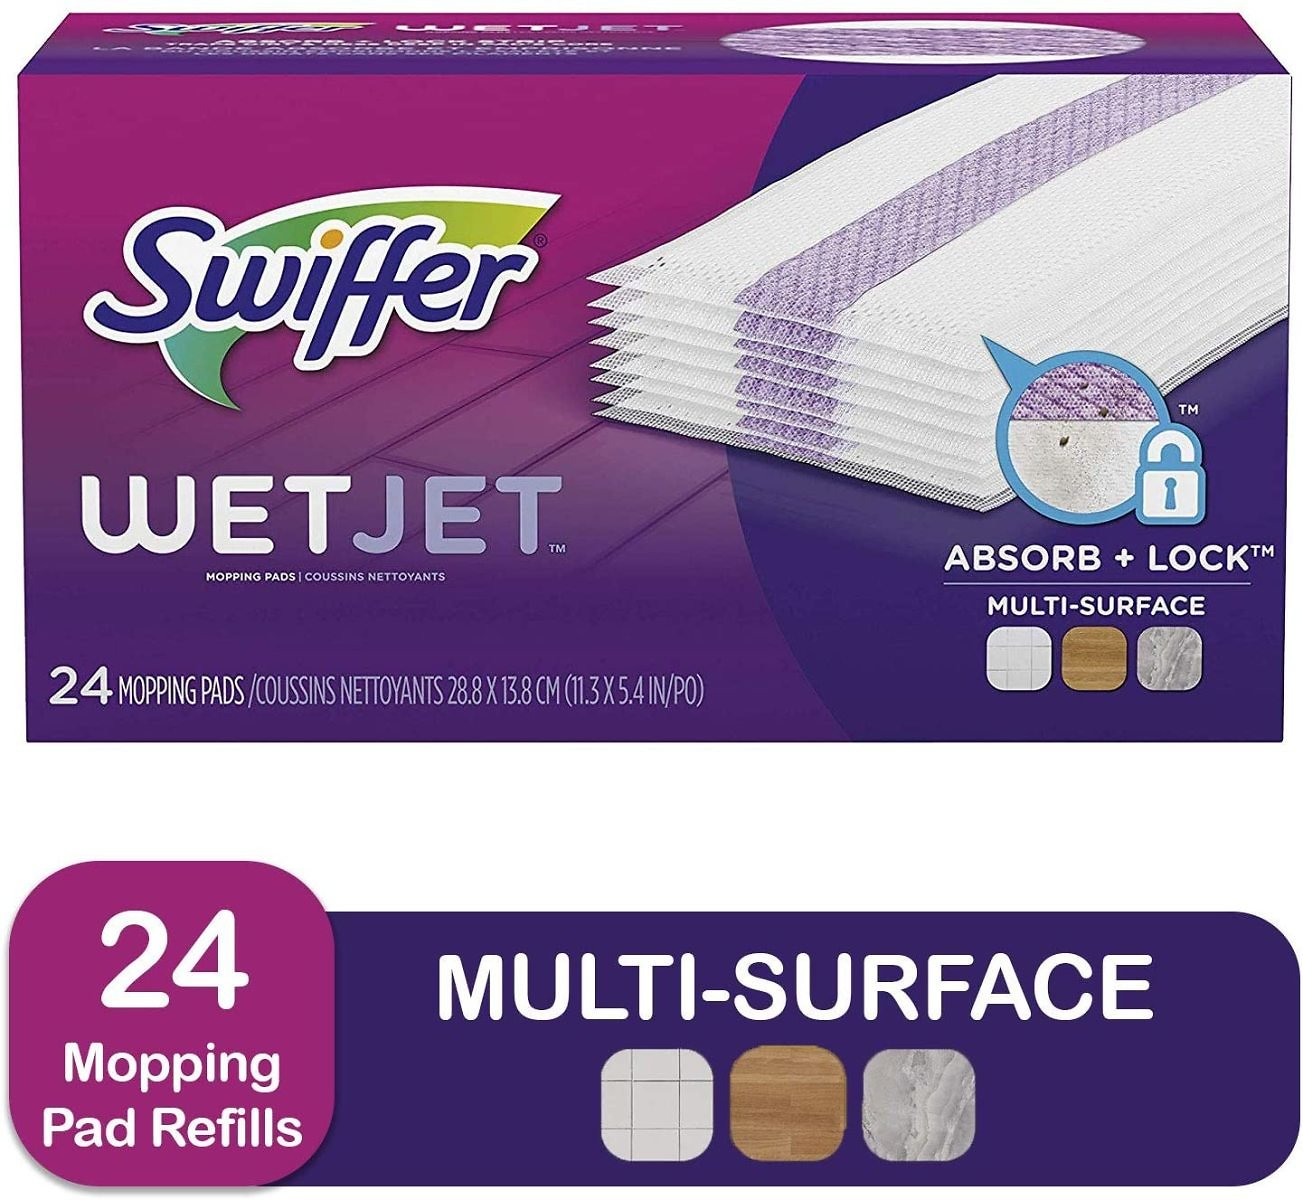 Swiffer Wetjet Hardwood Mop Pad Refills for Floor Mopping and Cleaning, 24 Ct.